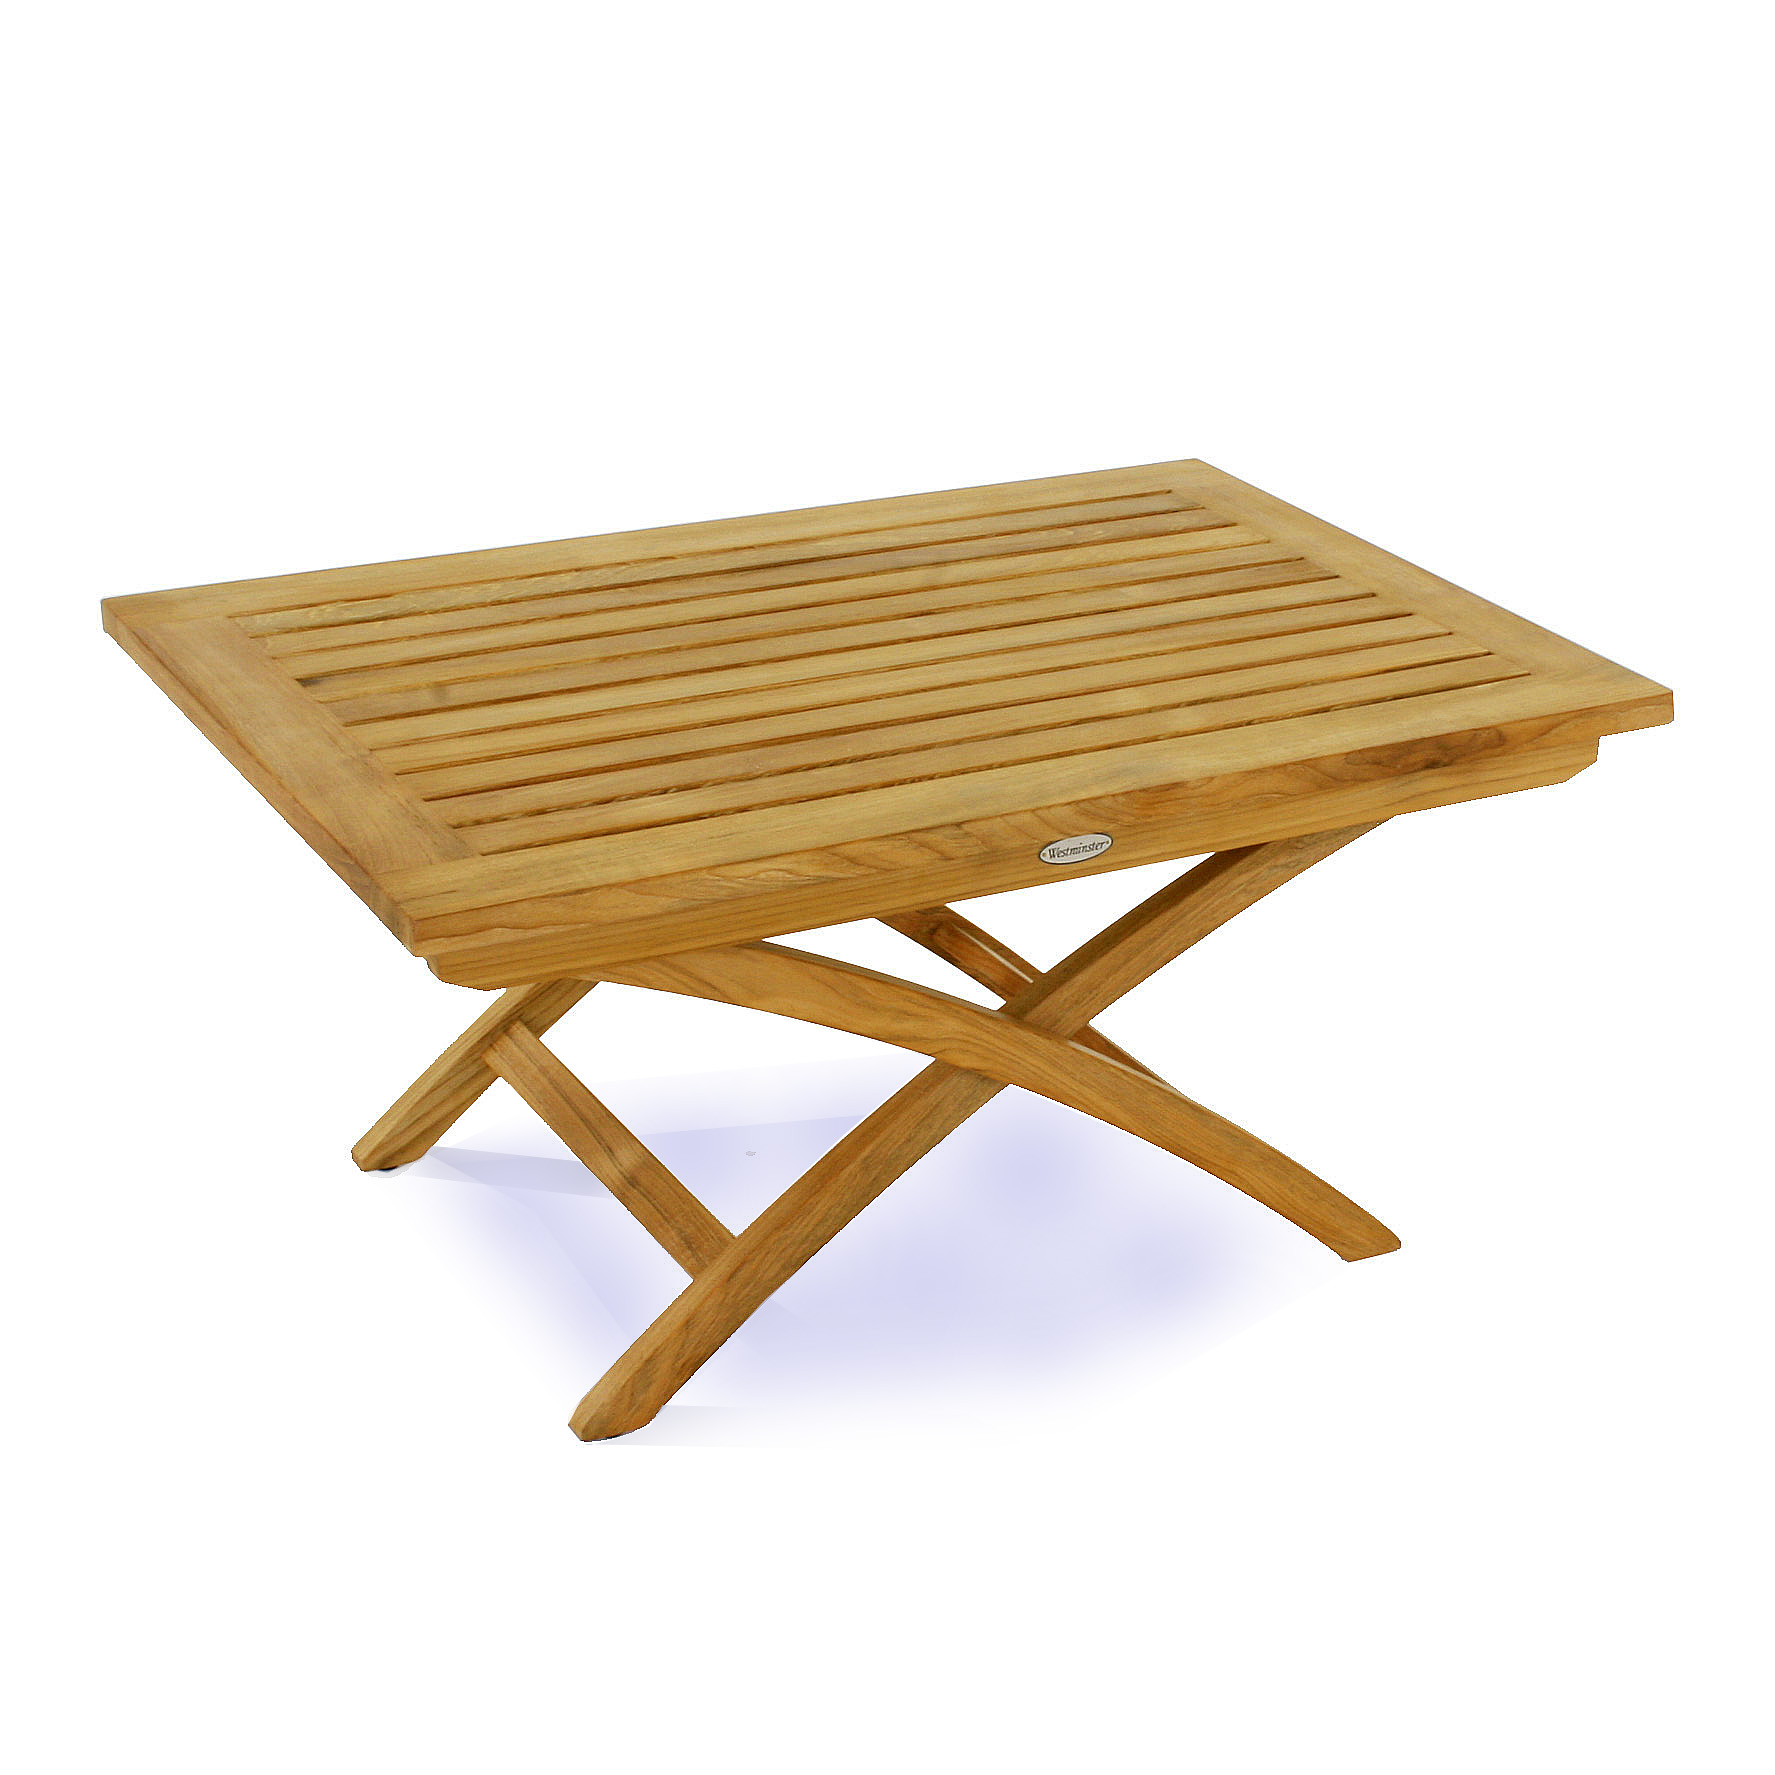 westminster teak folding coffee table - westminster teak outdoor